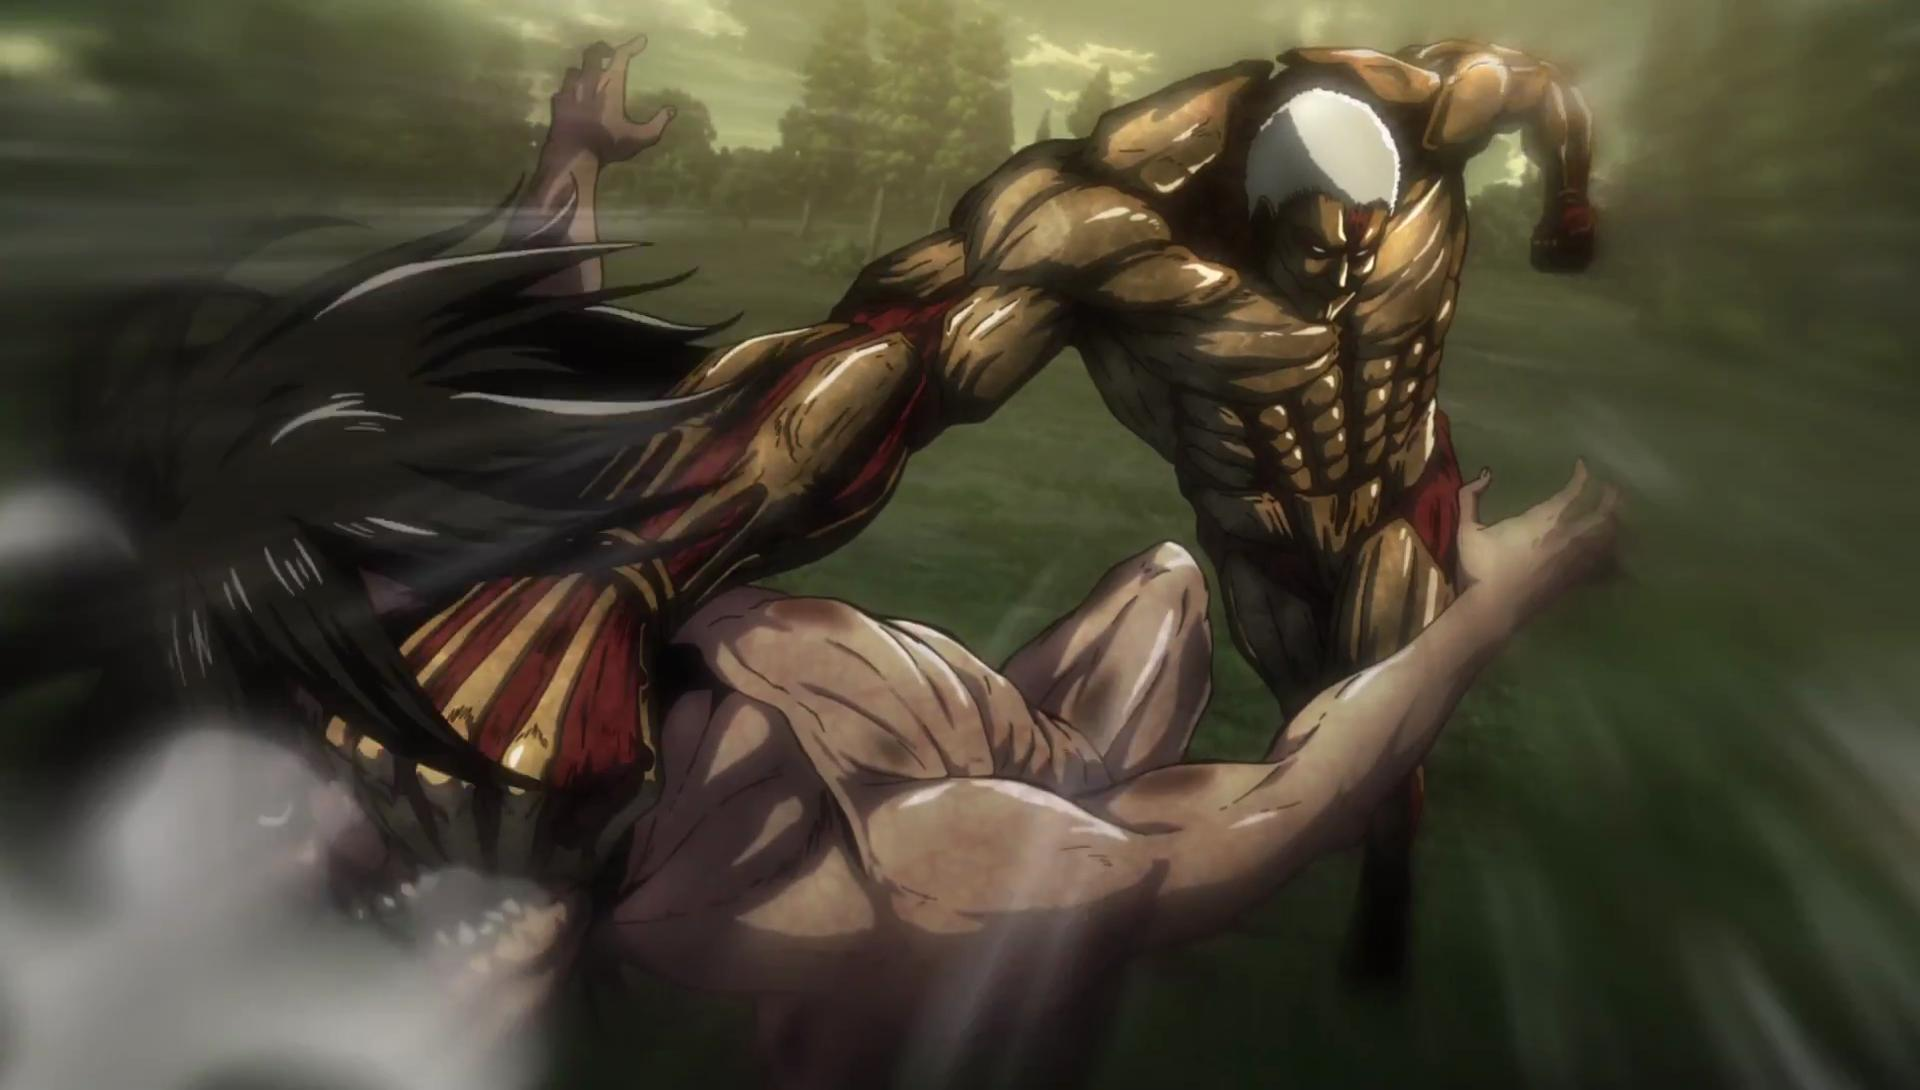 Eren Fights the Armored Titan in 'Attack on Titan' | Inverse